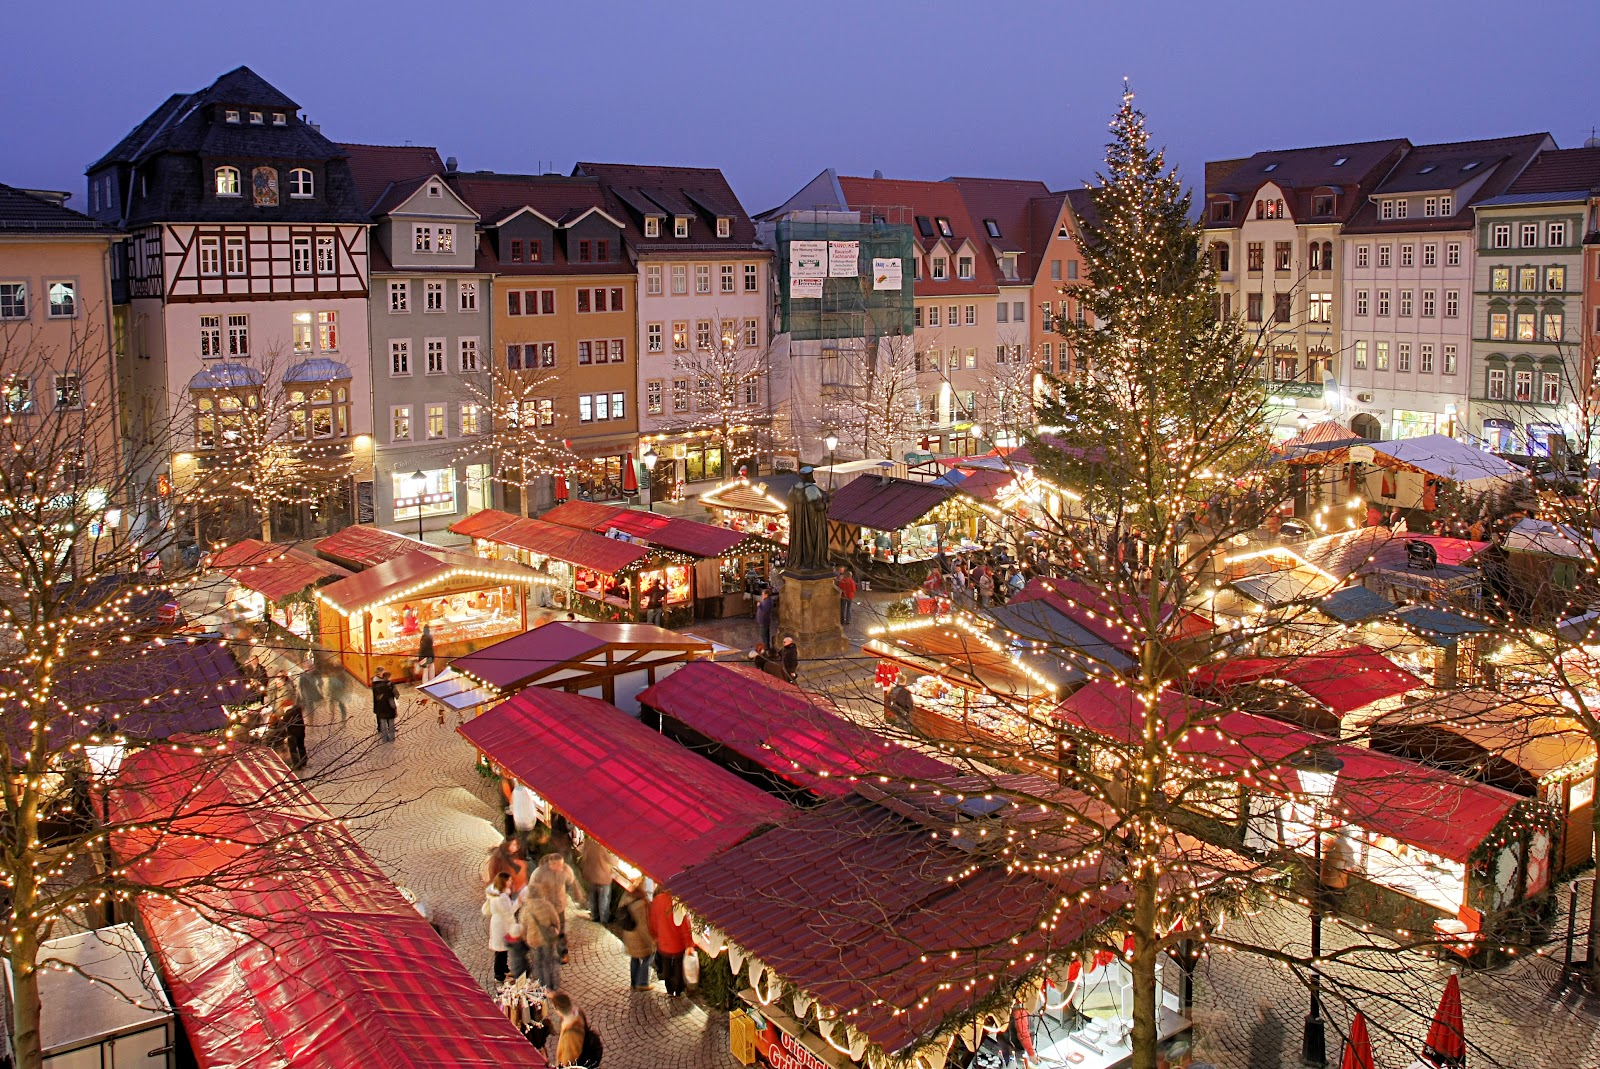 Christmas market in Jena,